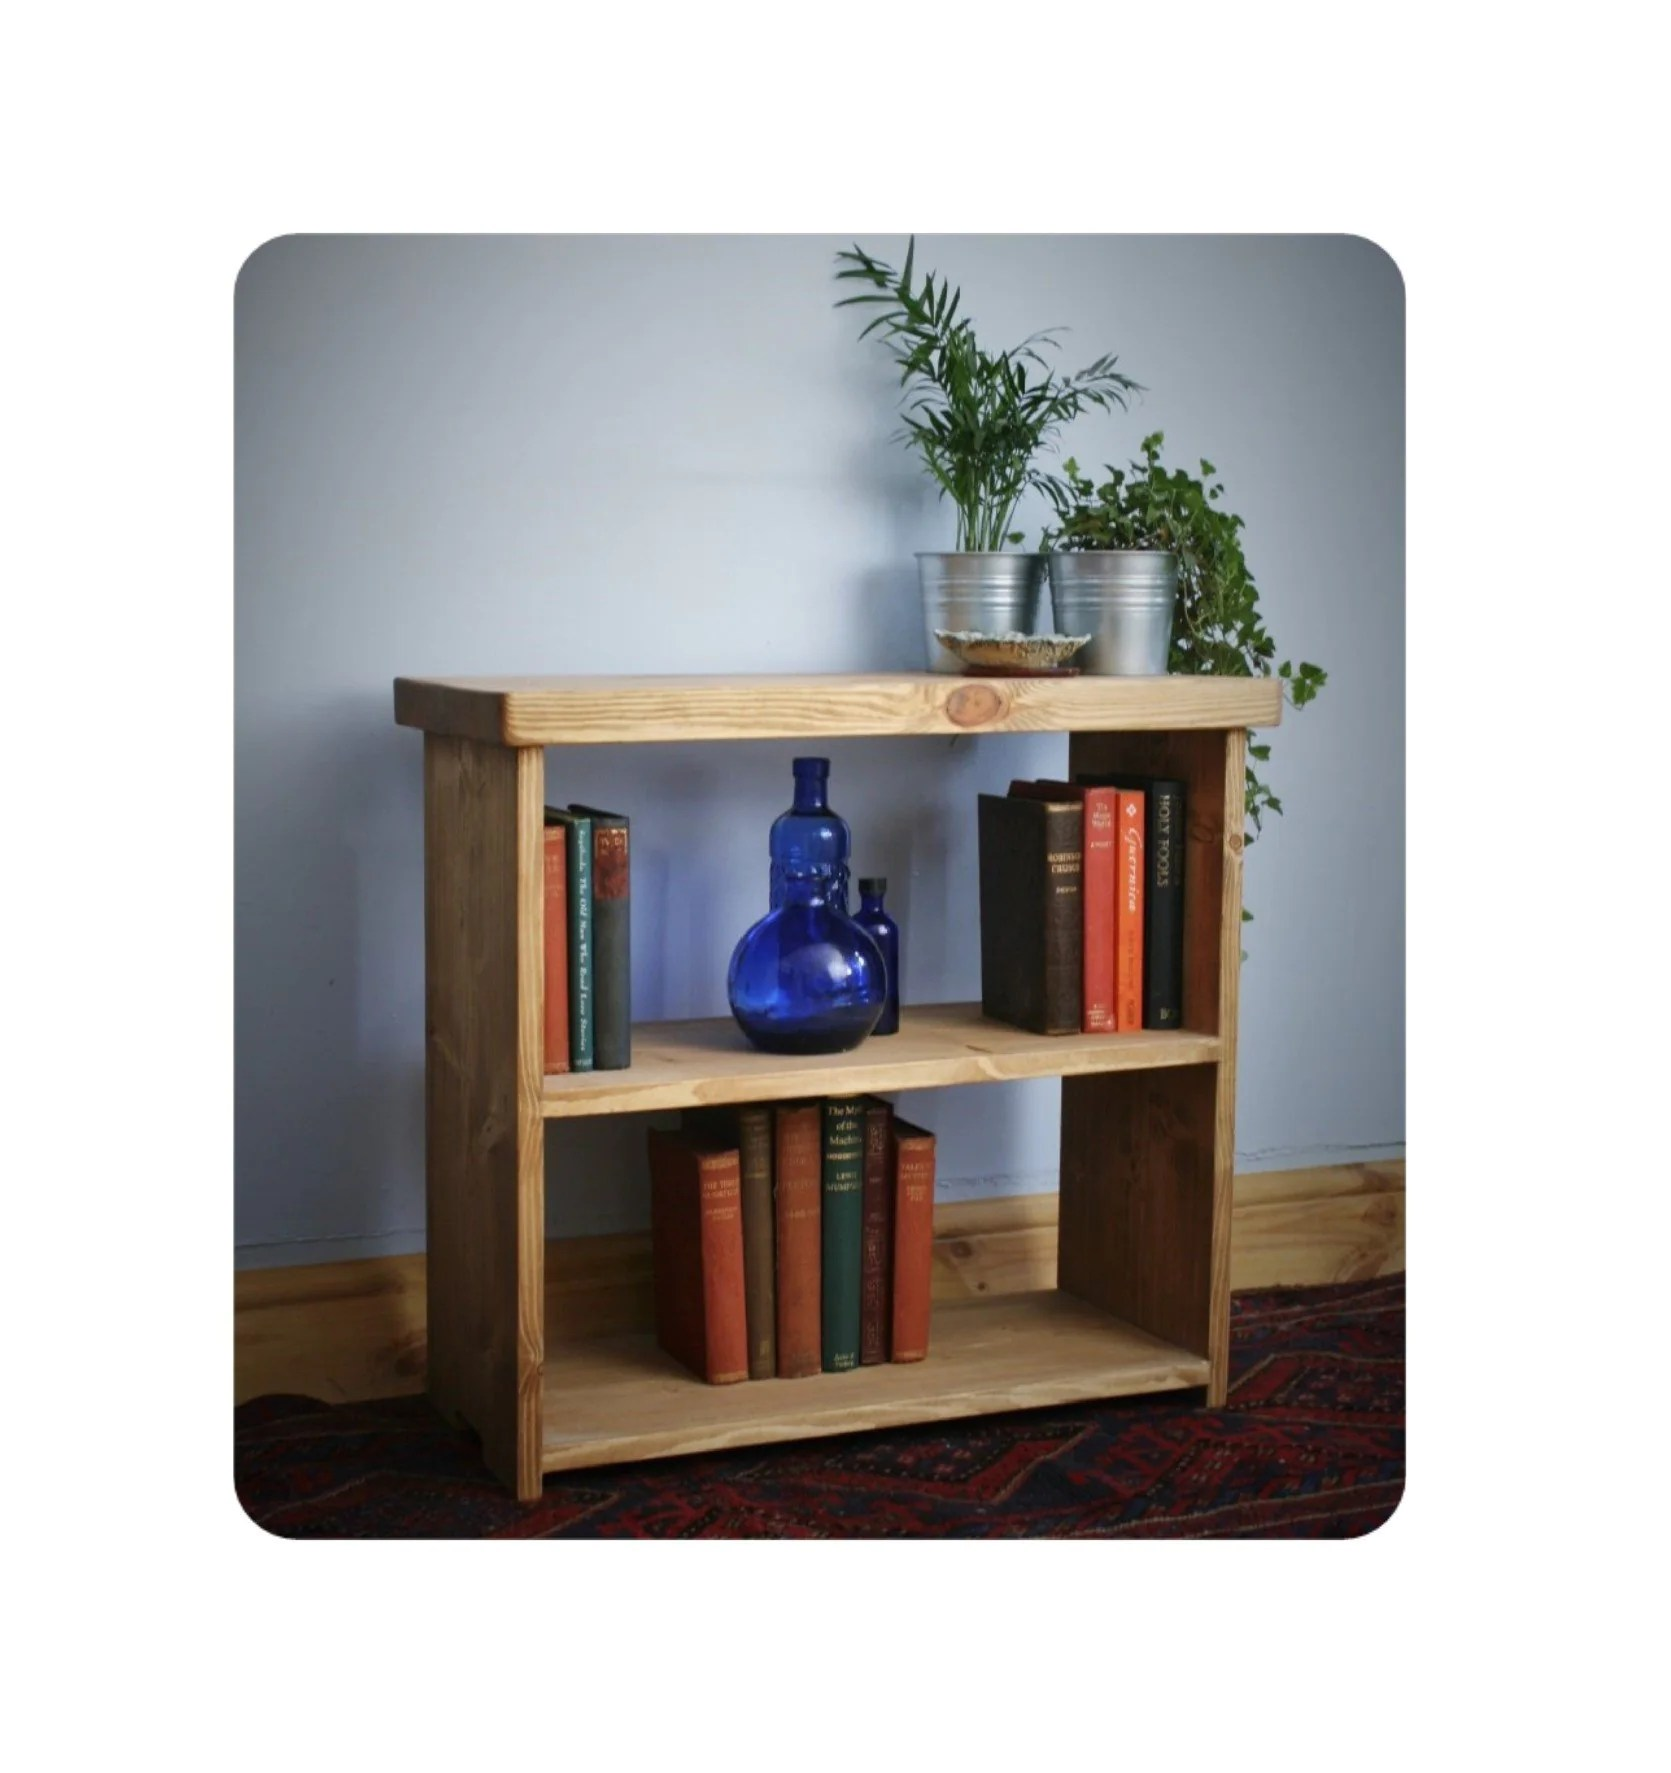 Wooden Bookshelf Low Bookcase Or Shelves 65w X 60h X 29d Cm In Eco Wood Chunky Table Style Top Modern Rustic Handmade In Somerset Uk